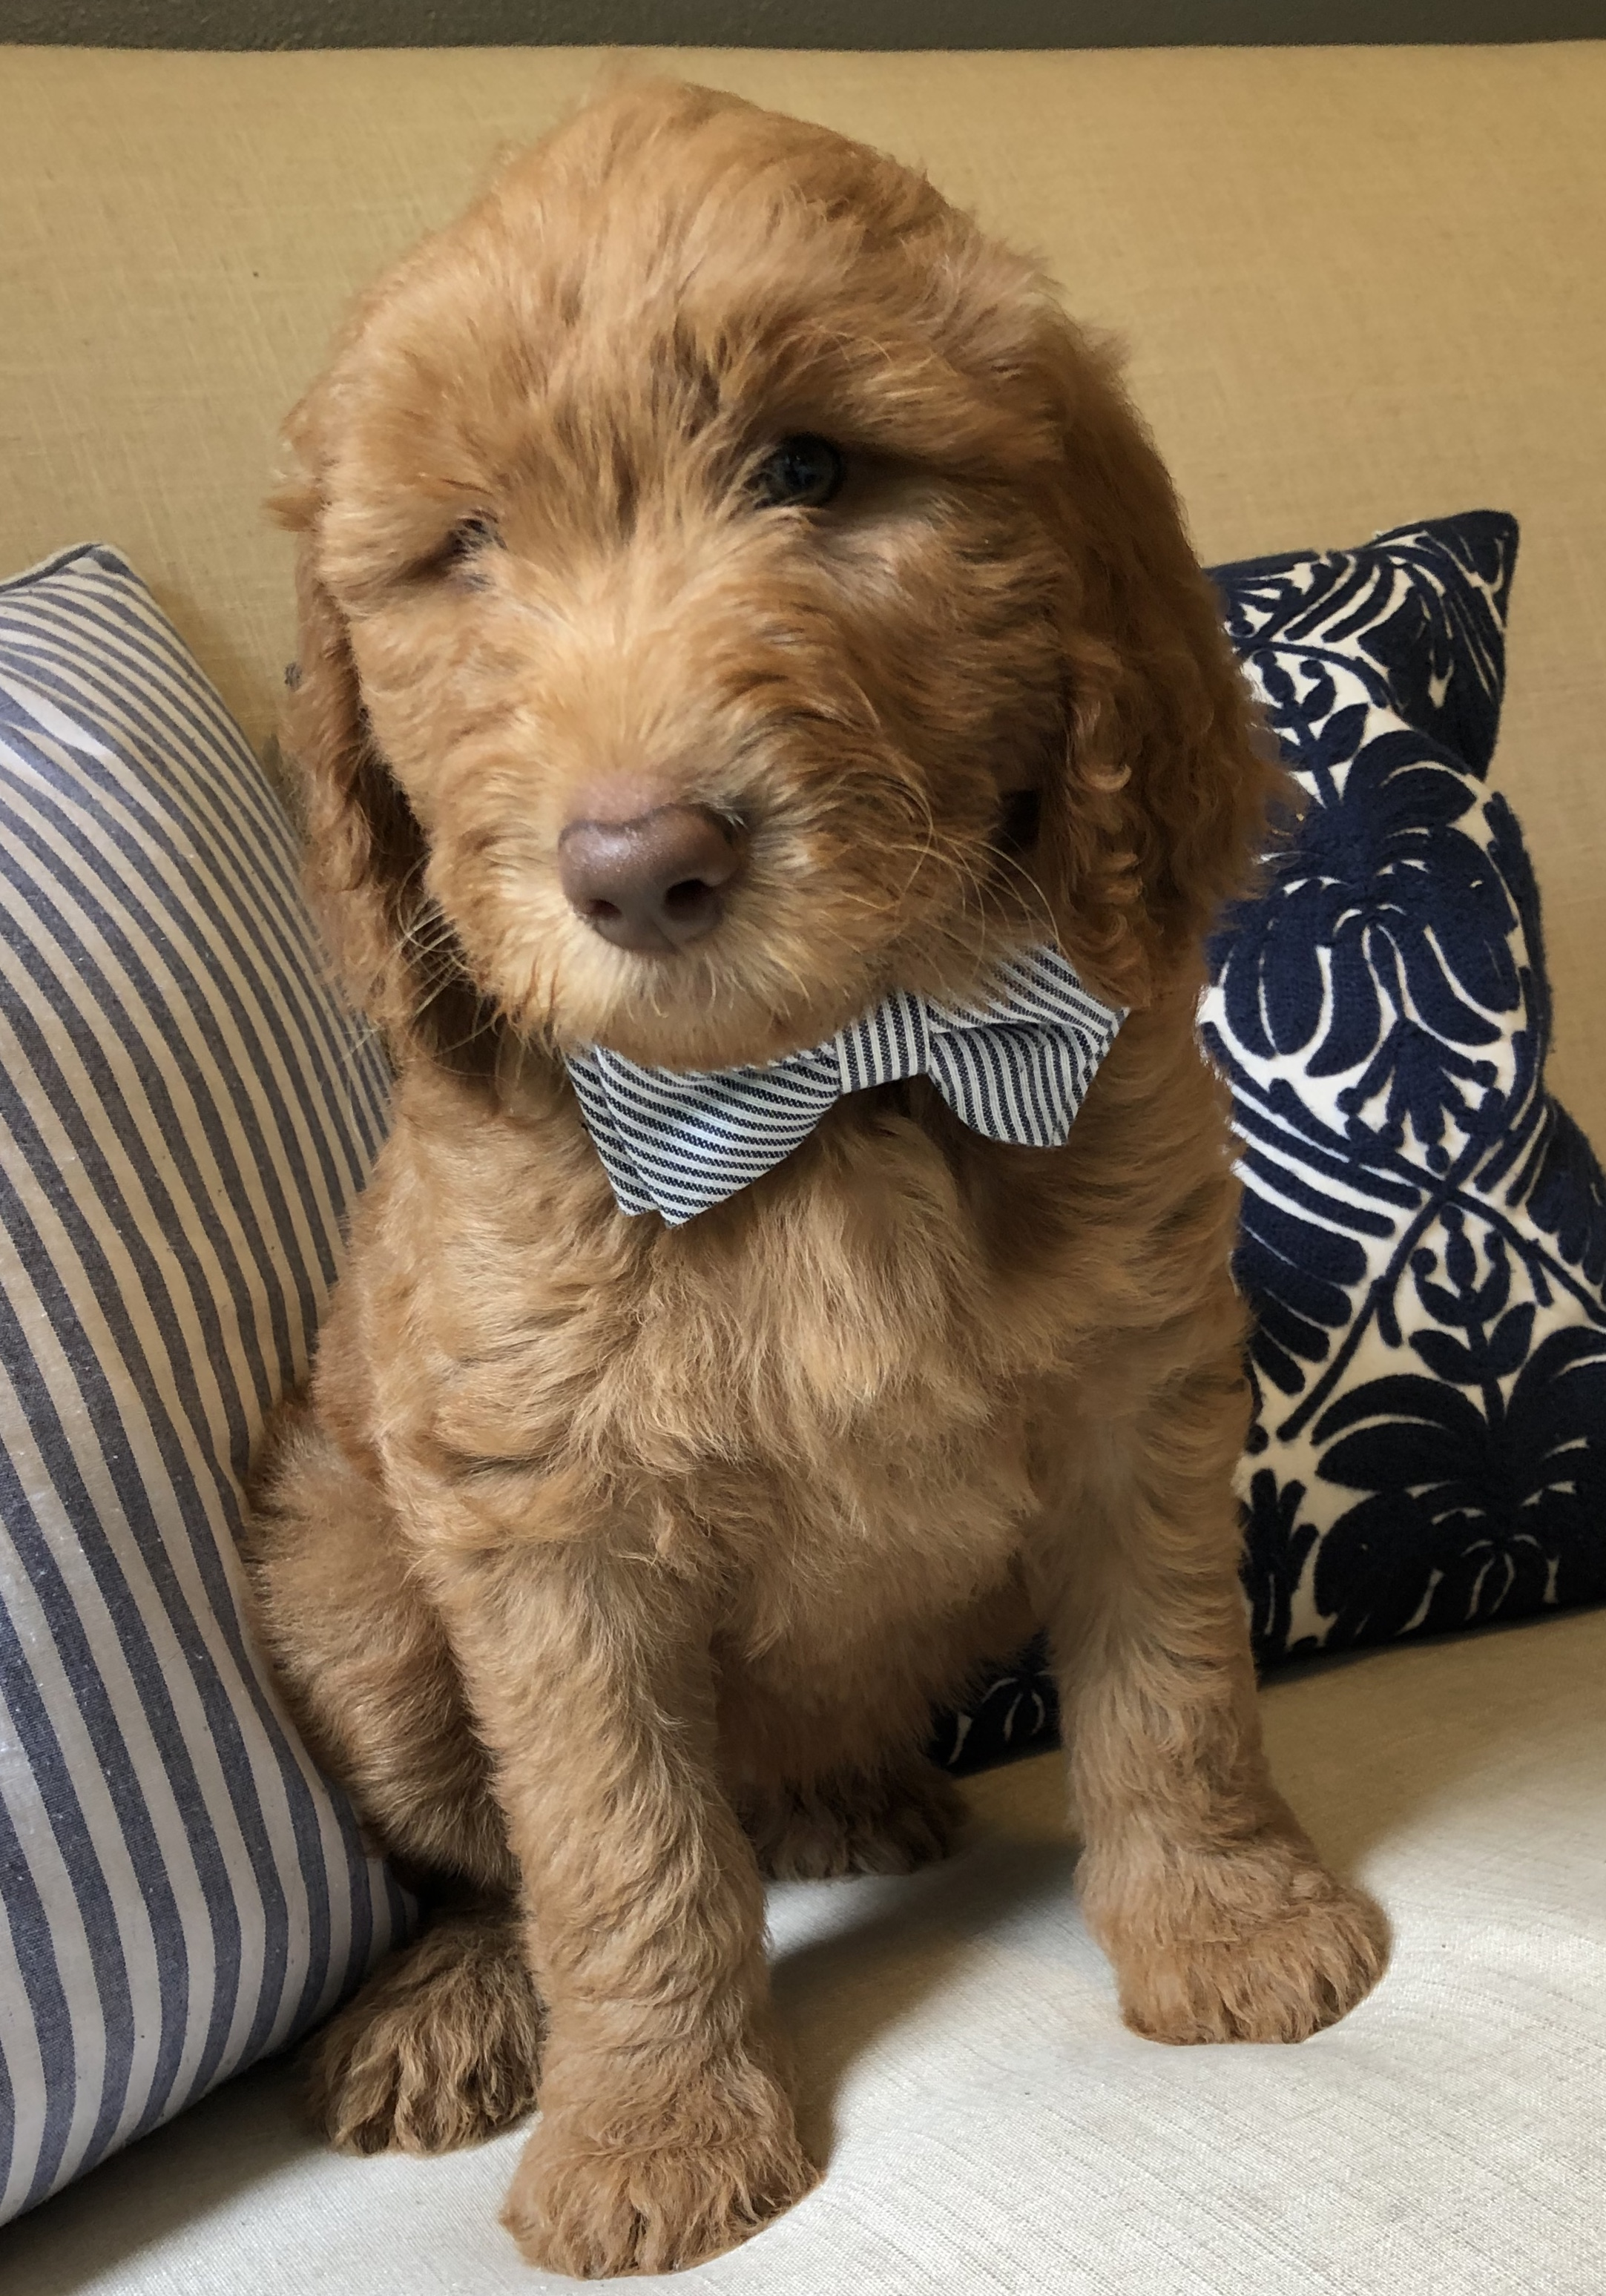 Our Last Red & Cream Goldendoodle boy. We call him Archie, he is the nicest little guy!